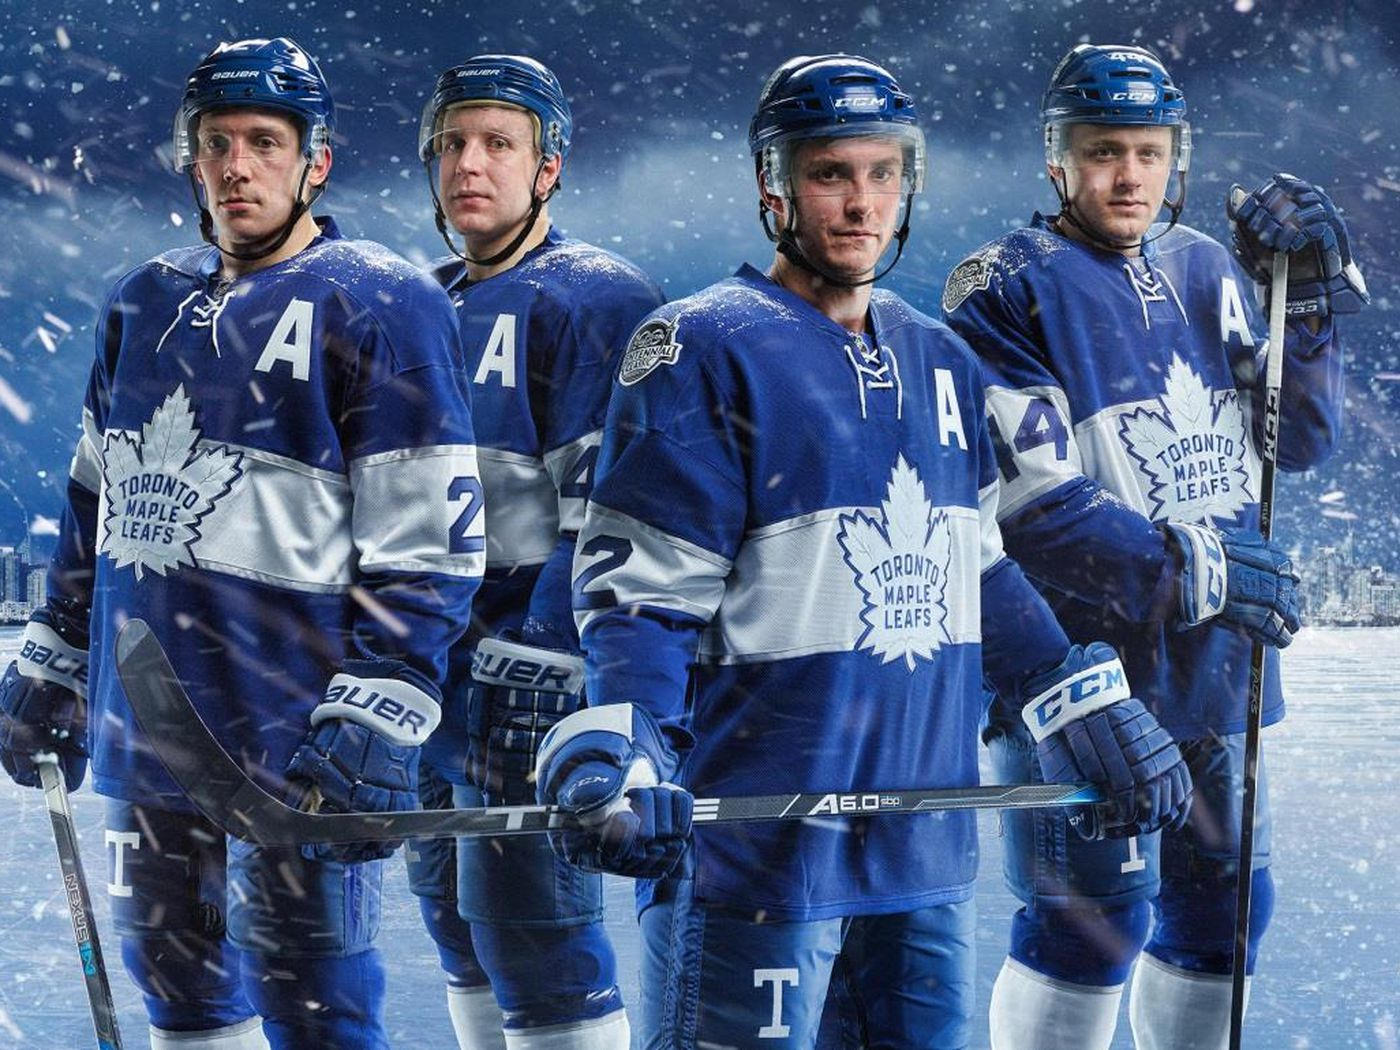 Toronto Maple Leafs 2017 Centennial Classic Jerseys Officially Revealed Pension Plan Puppets